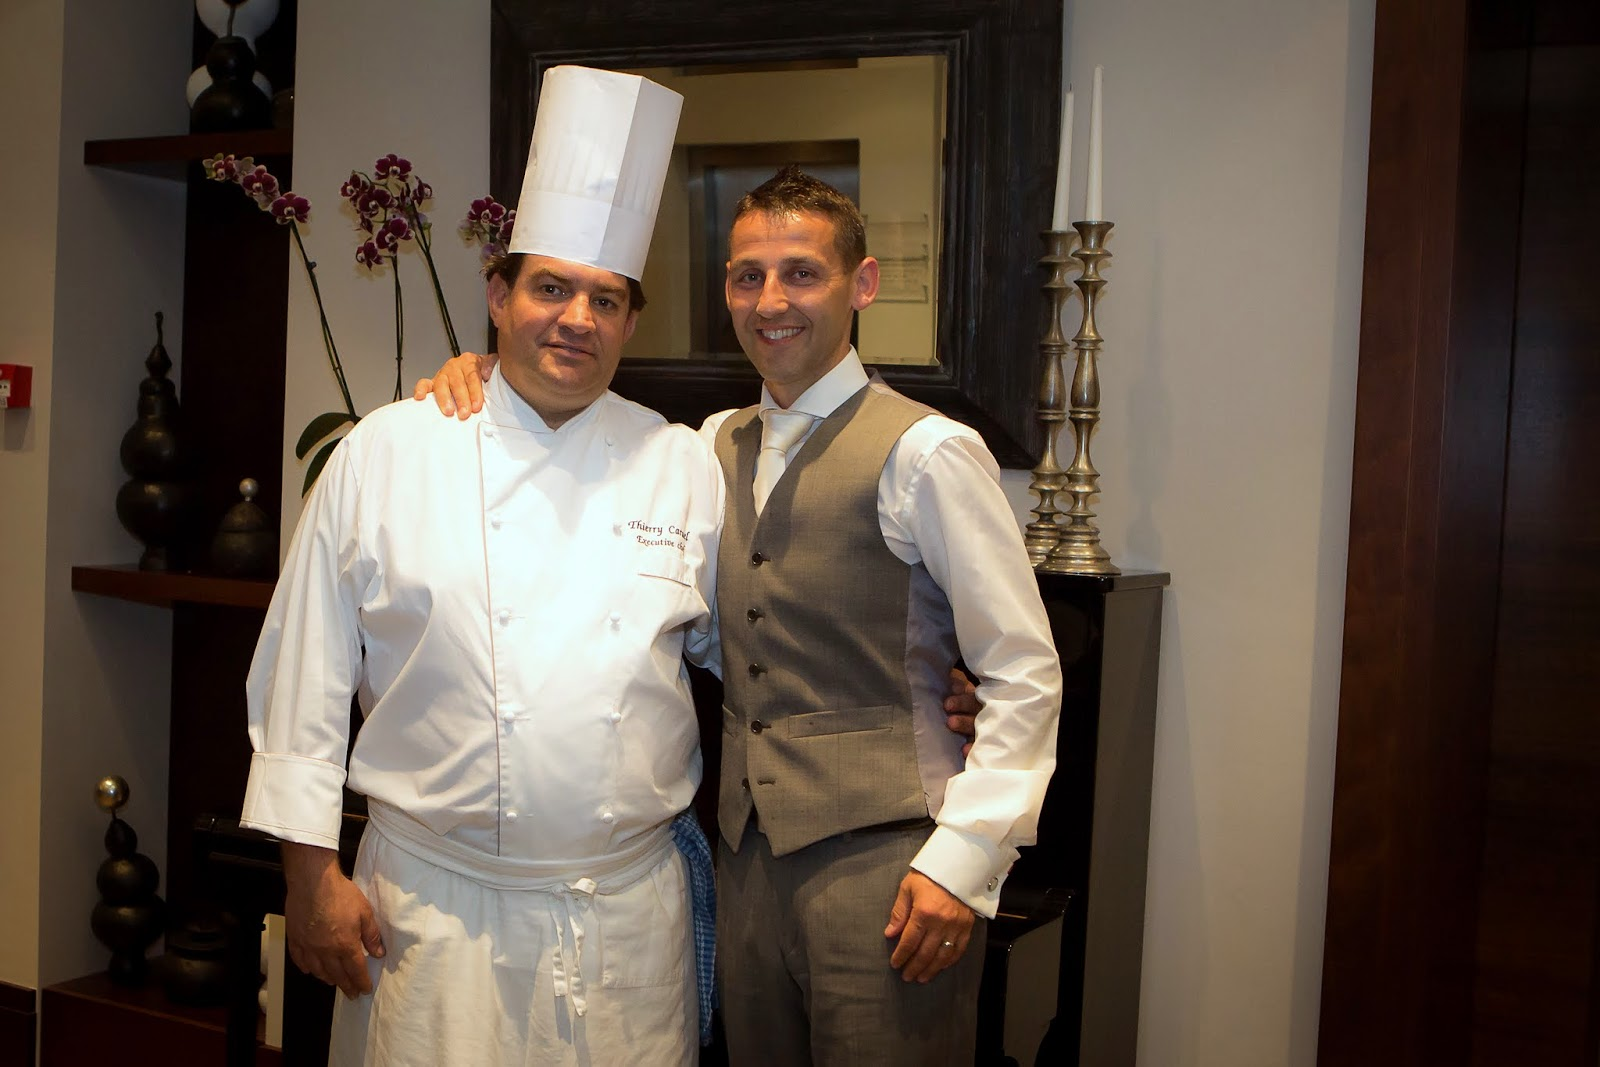 Chef Thierry Caruel and Groom Jonathon Hawthorne